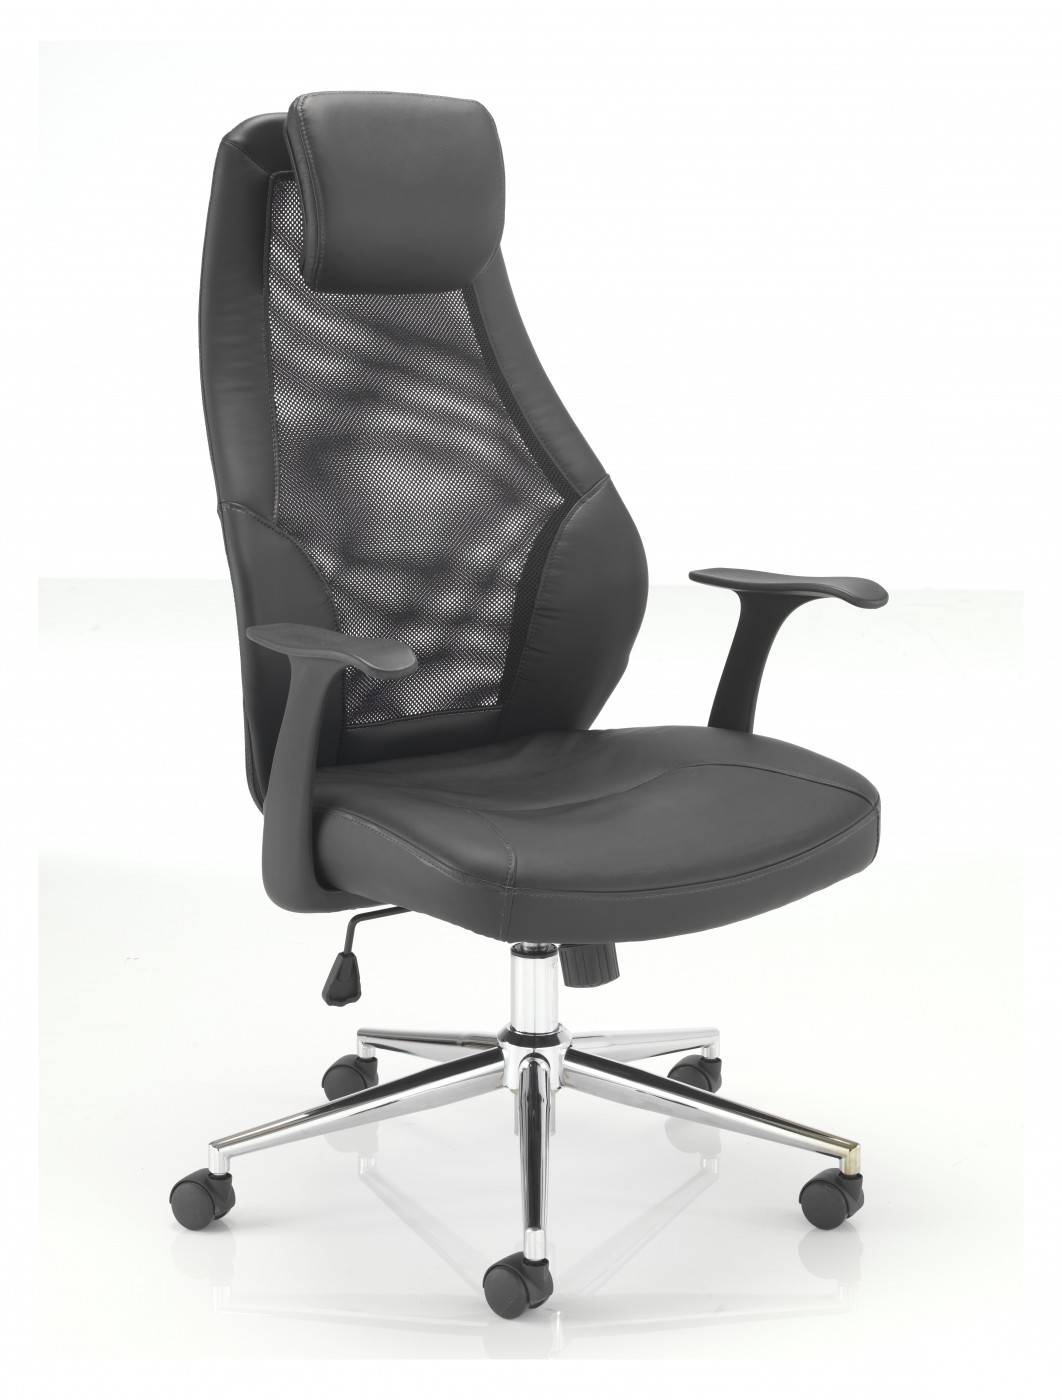 tc executive mesh office chair ch2403 enlarged view